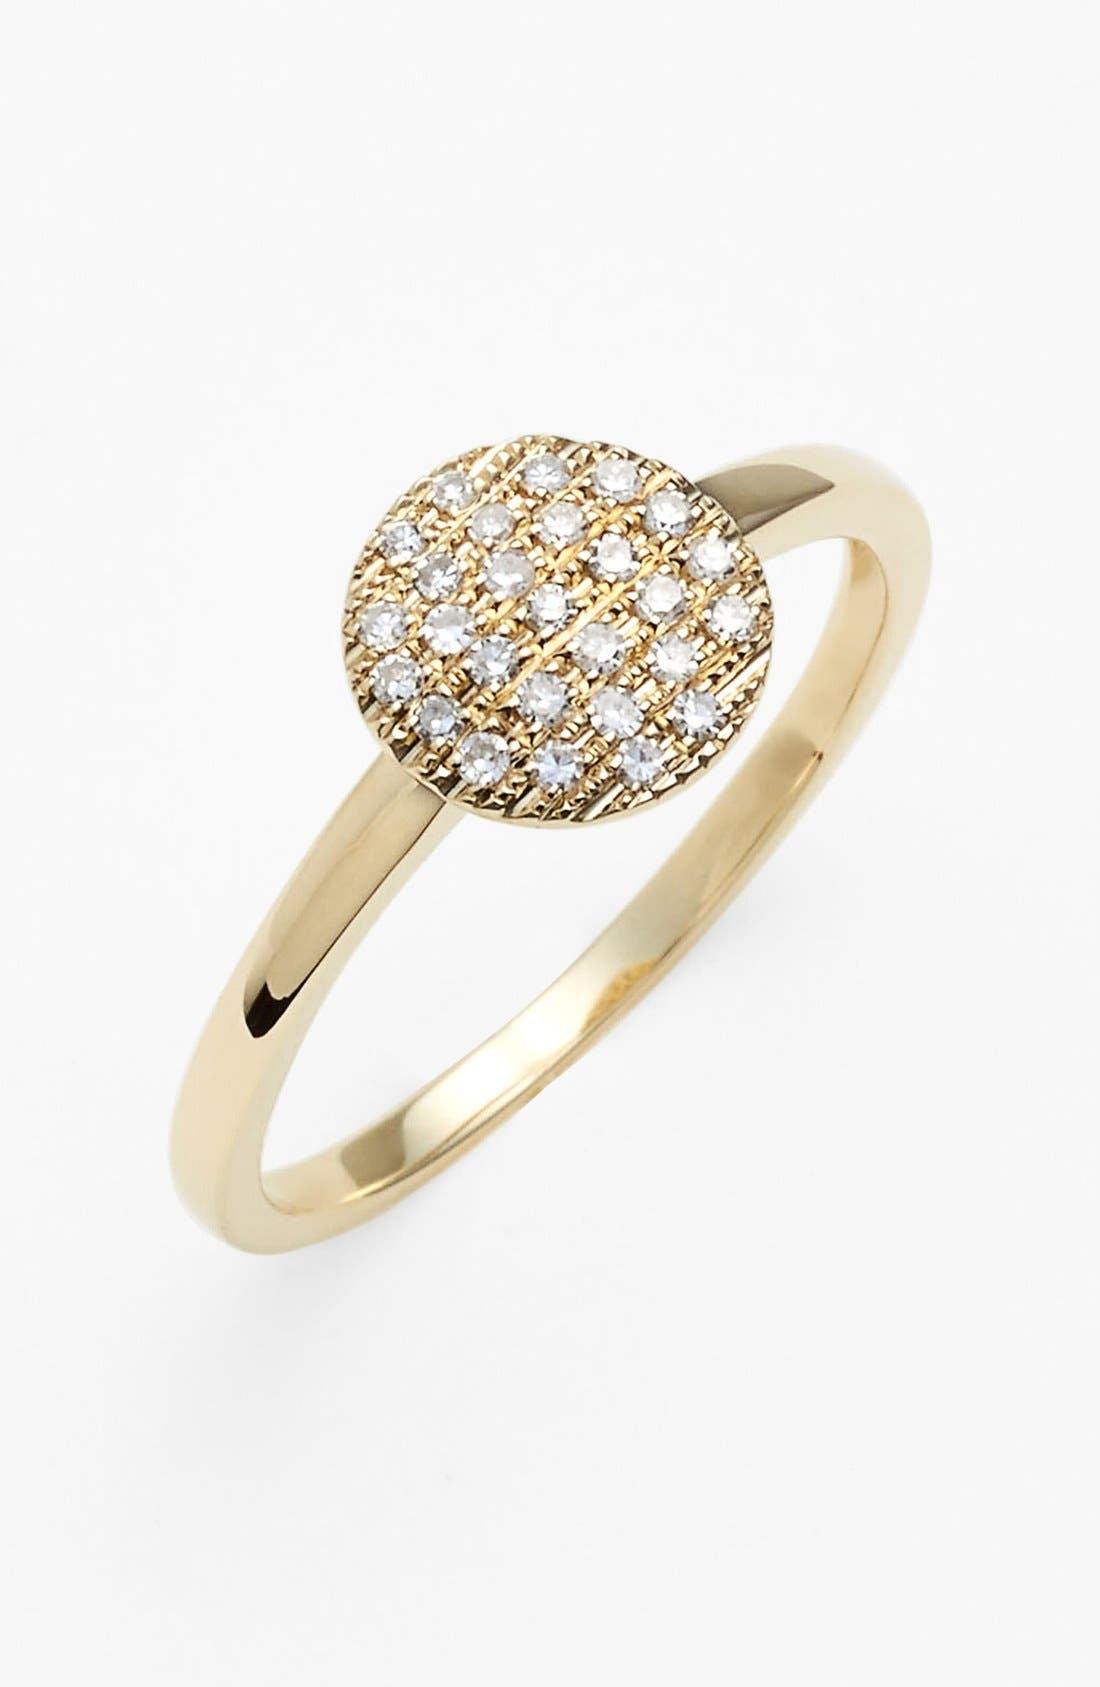 Alternate Image 1 Selected - Dana Rebecca Designs 'Lauren Joy' Diamond Ring